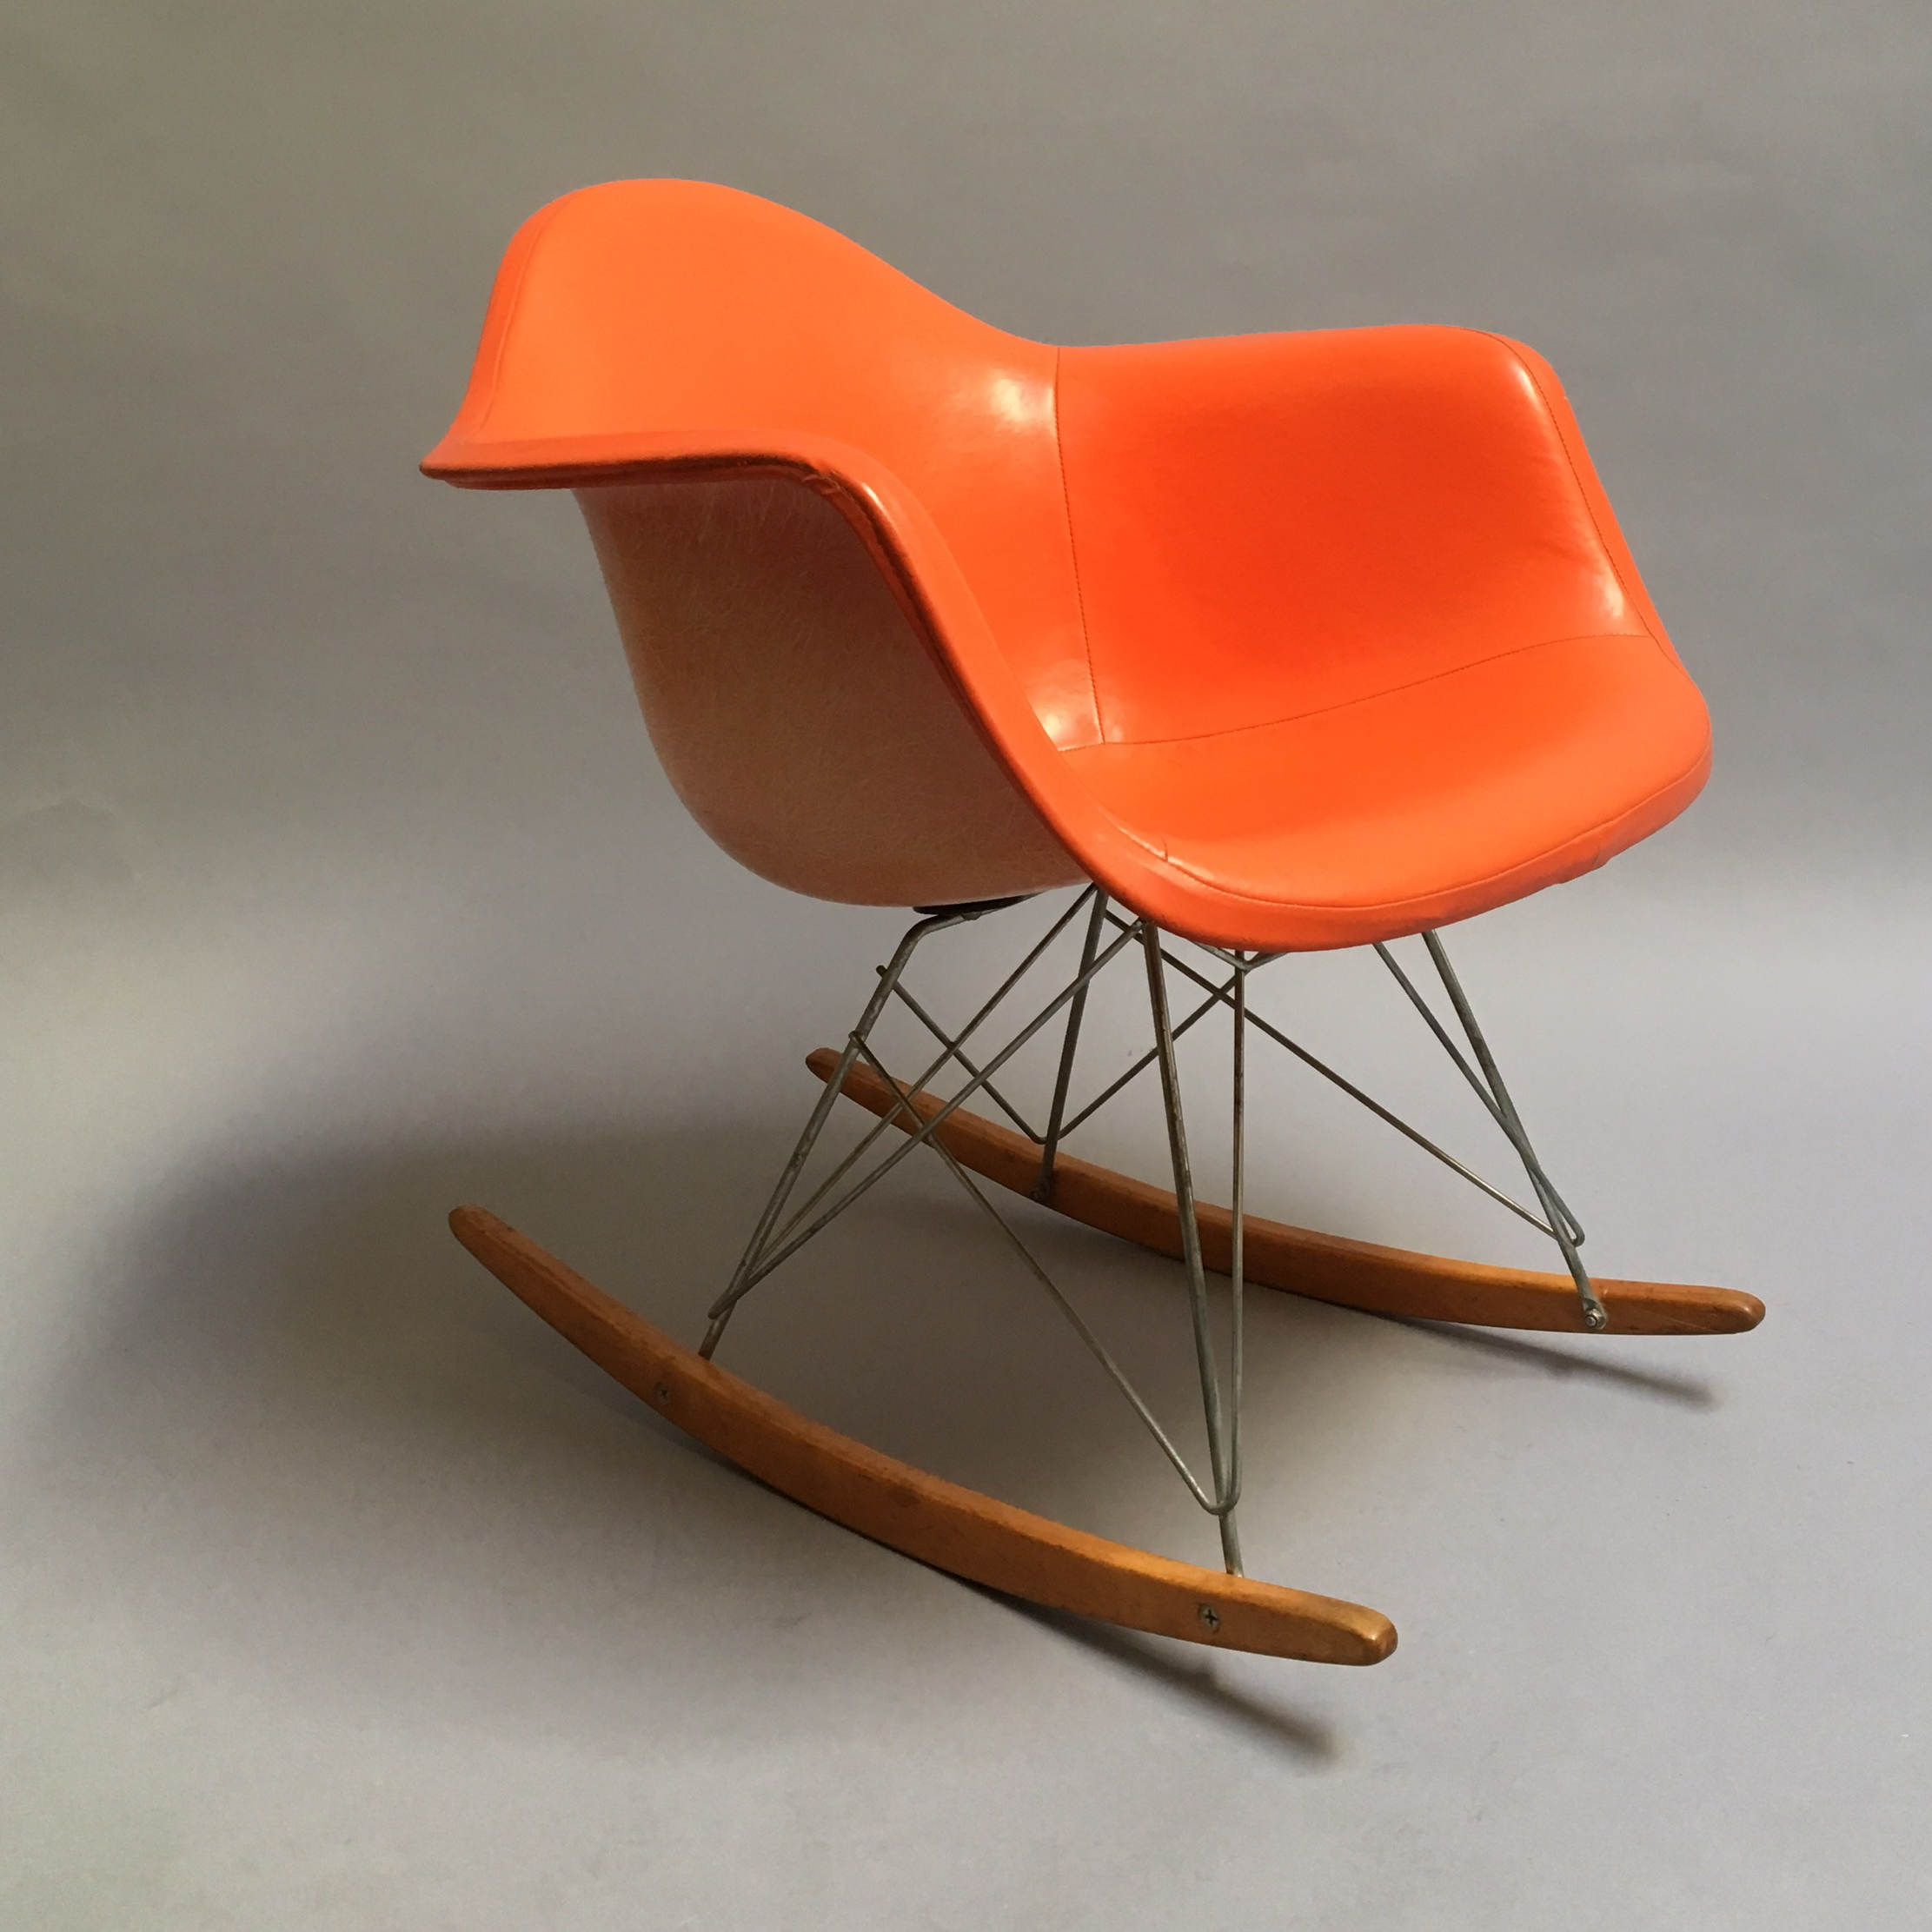 Beau Original Vintage Eames Rocking Chair Produced By Herman Miller. This Is A  Great Example Of